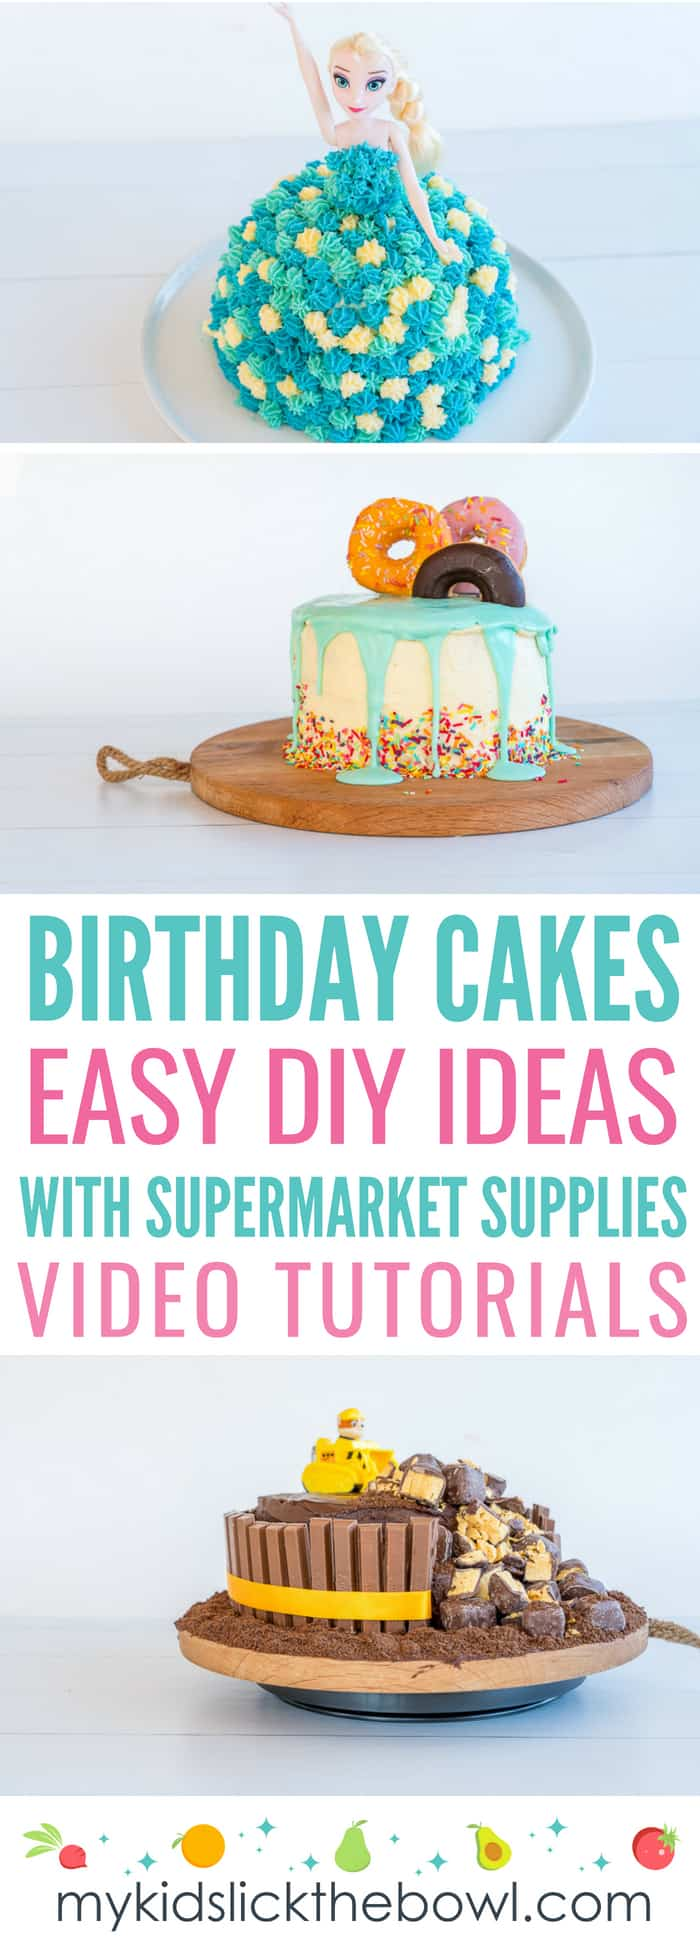 Astonishing Easy Diy Birthday Cake Ideas For Children Video Tutorials Personalised Birthday Cards Epsylily Jamesorg